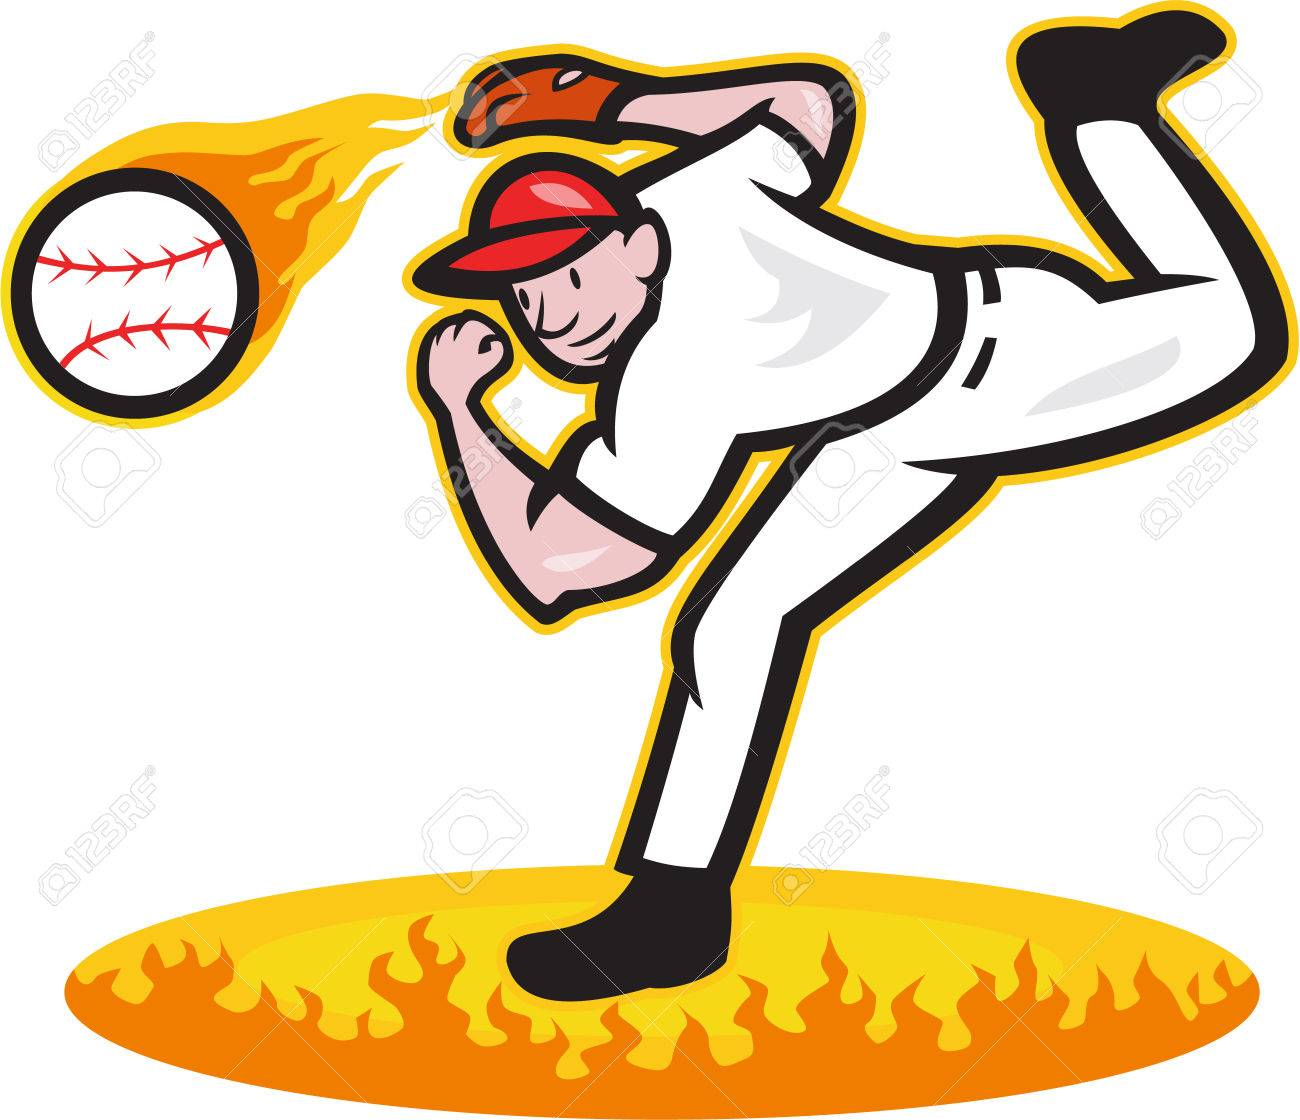 Illustration of a american baseball player pitcher outfielder...